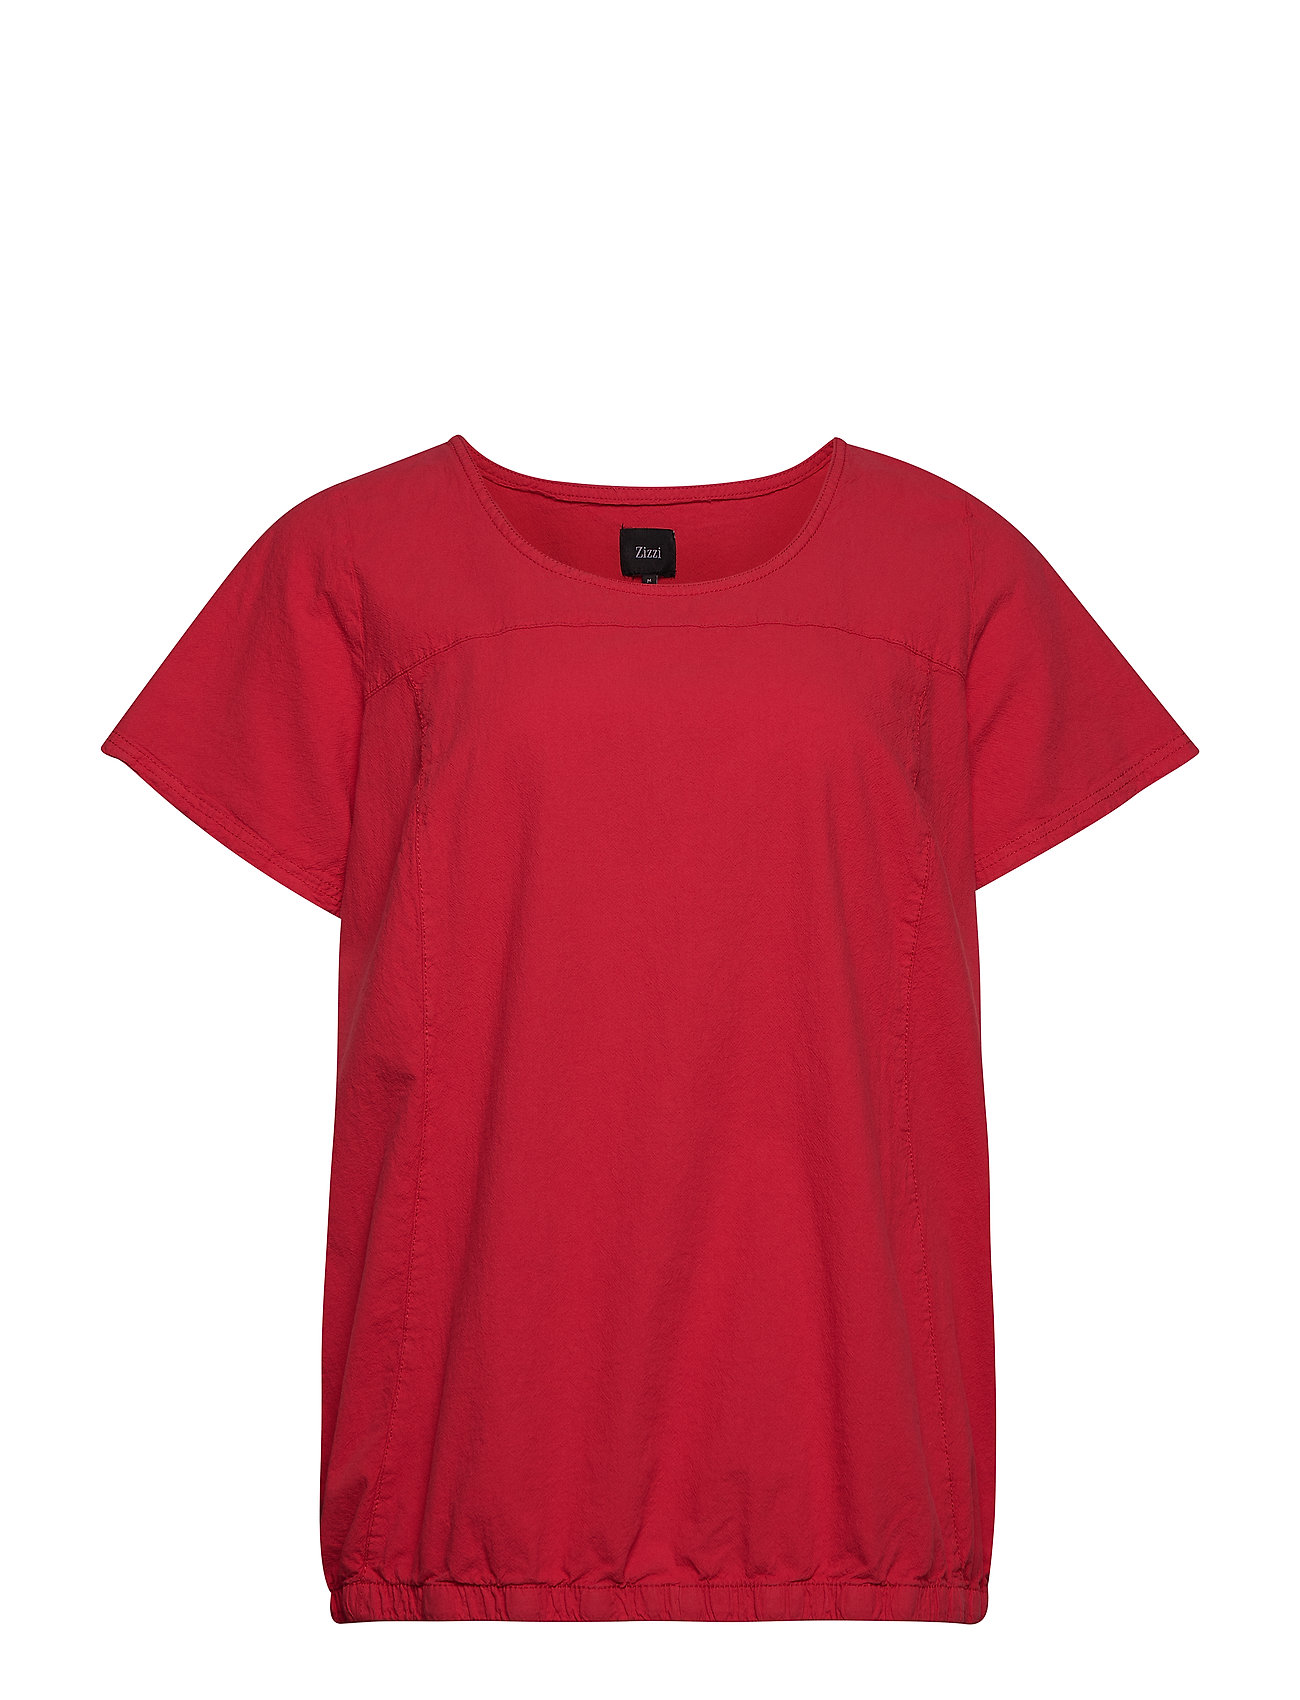 Zizzi MMarrakesh, SS, BLOUSE - RED